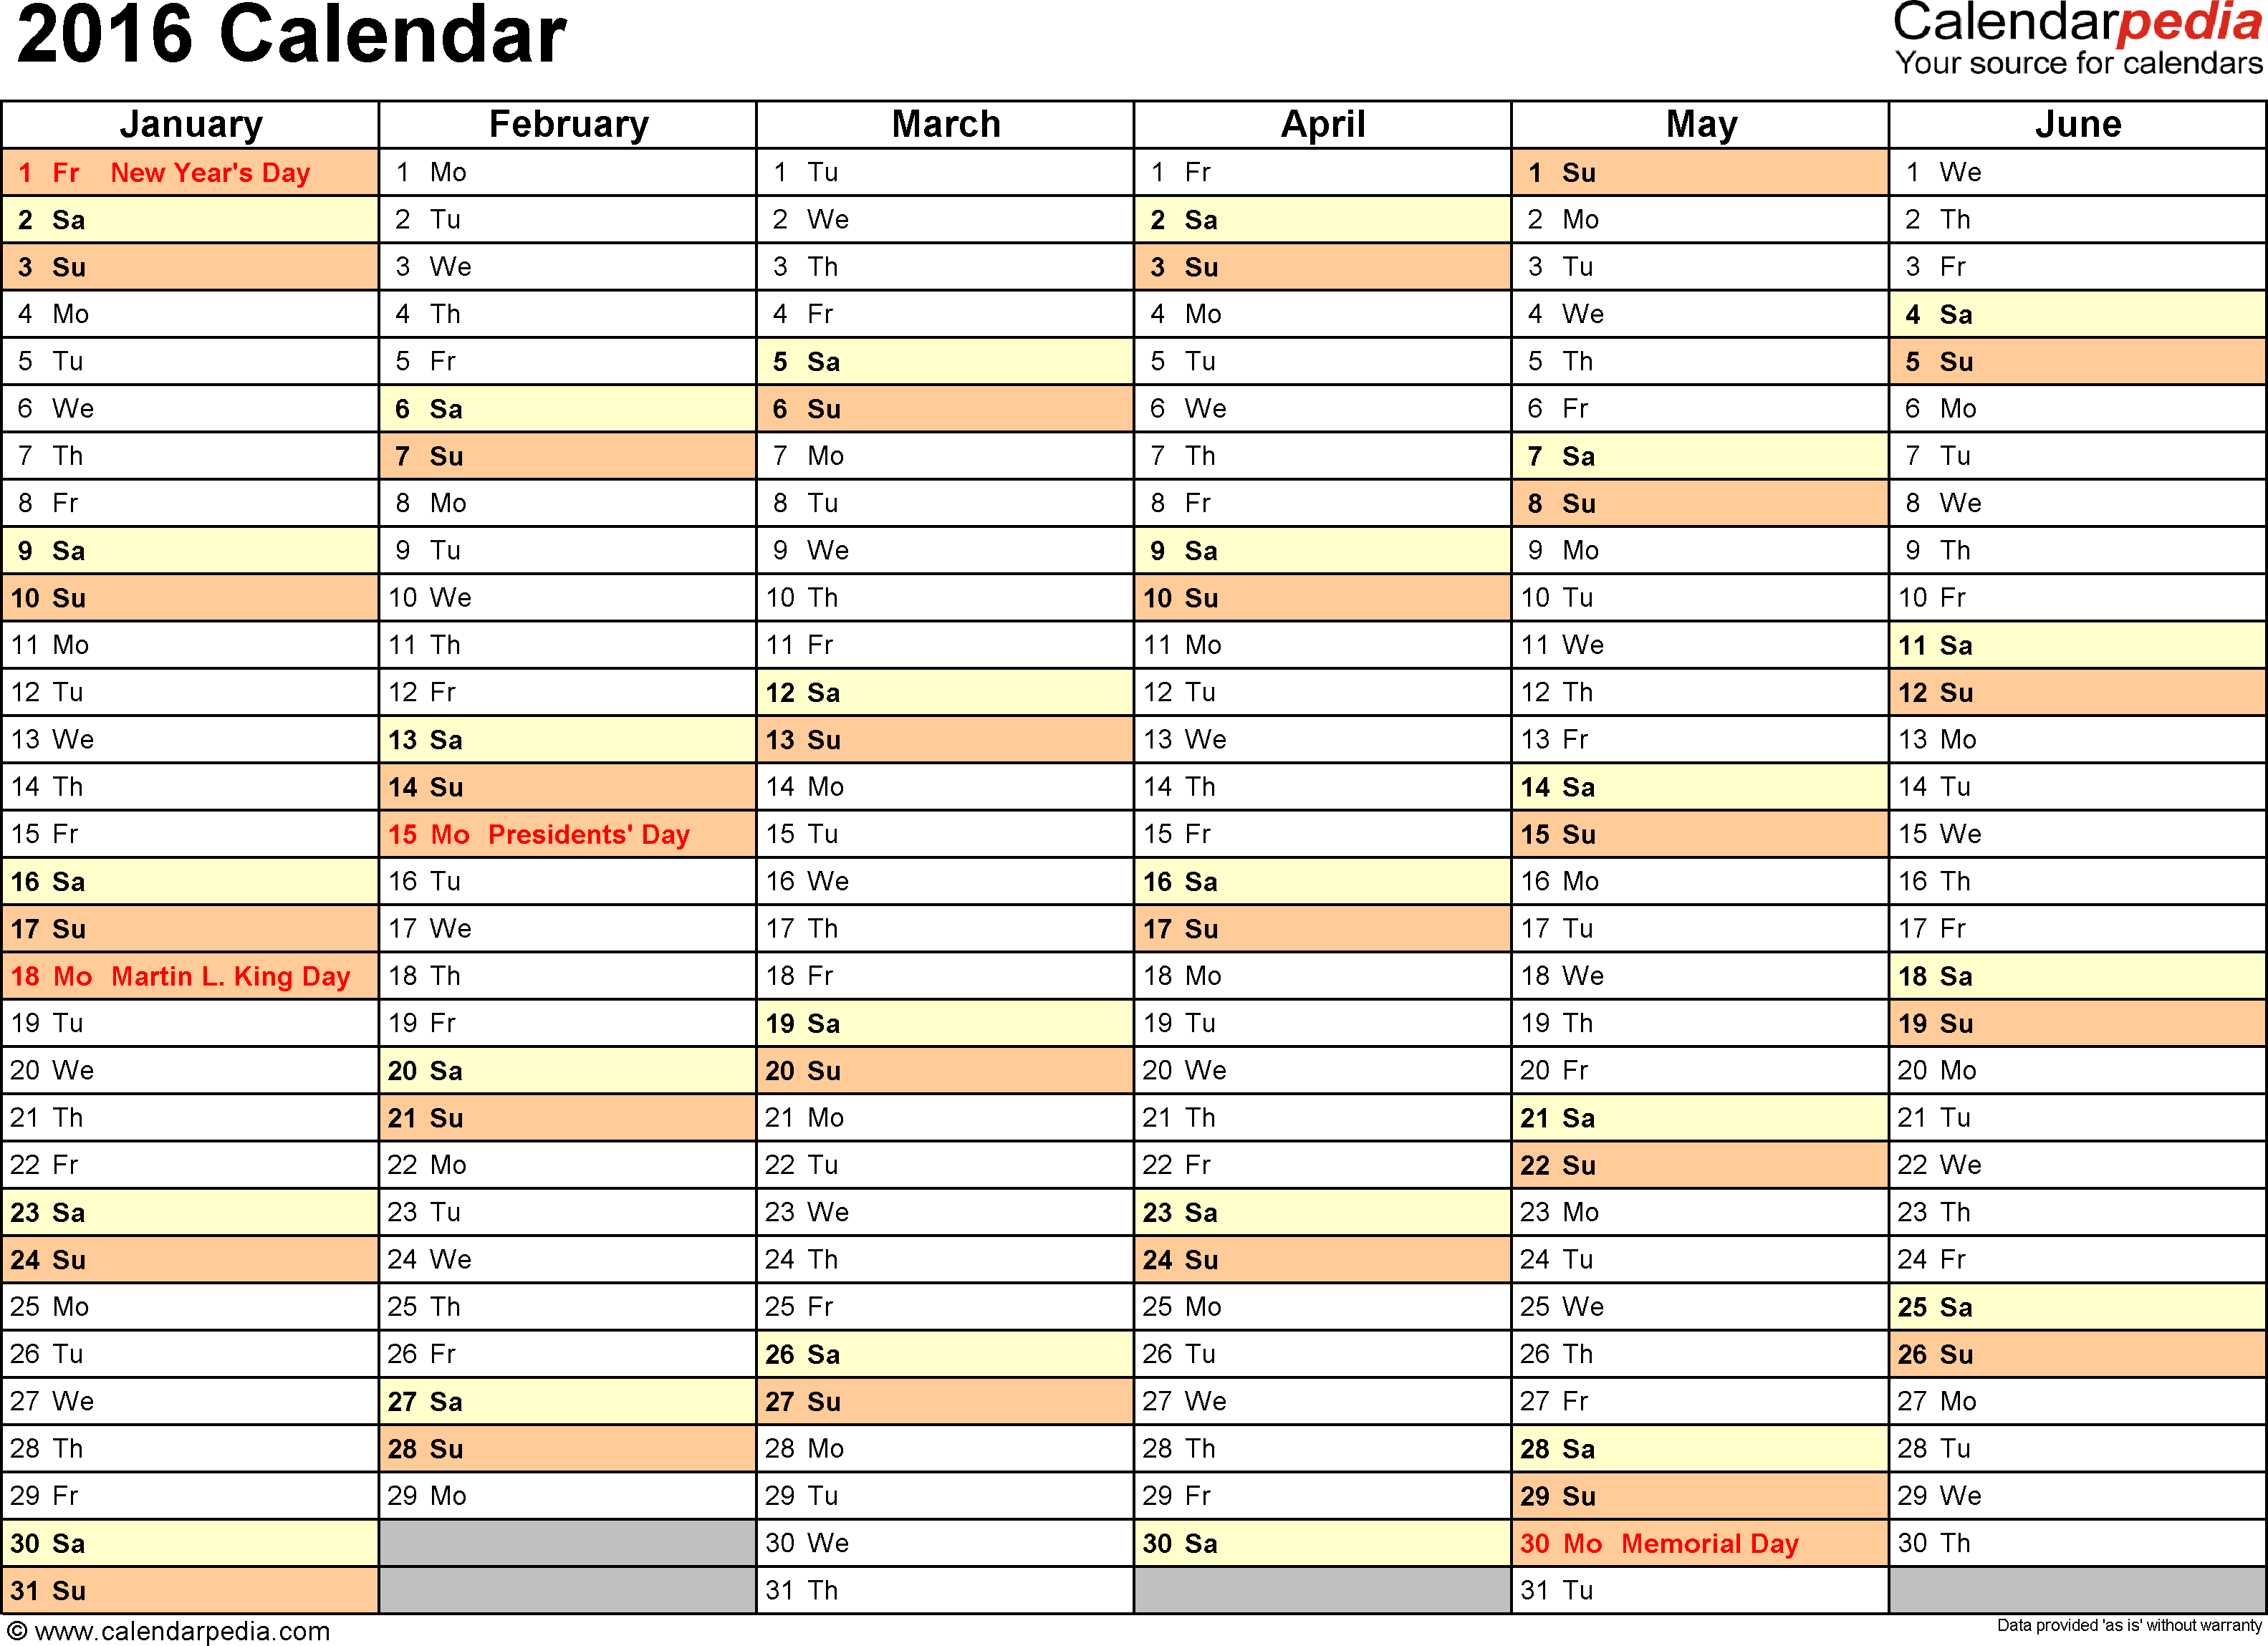 Ediblewildsus  Unique  Calendar  Download  Free Printable Excel Templates Xls With Fetching Template   Calendar For Excel Months Horizontally  Pages Landscape Orientation With Agreeable Powerpivot For Excel Also How To Freeze Row In Excel In Addition Excel Udf And Header Row Excel As Well As How To Excel In College Additionally How To Use Countif Function In Excel From Calendarpediacom With Ediblewildsus  Fetching  Calendar  Download  Free Printable Excel Templates Xls With Agreeable Template   Calendar For Excel Months Horizontally  Pages Landscape Orientation And Unique Powerpivot For Excel Also How To Freeze Row In Excel In Addition Excel Udf From Calendarpediacom